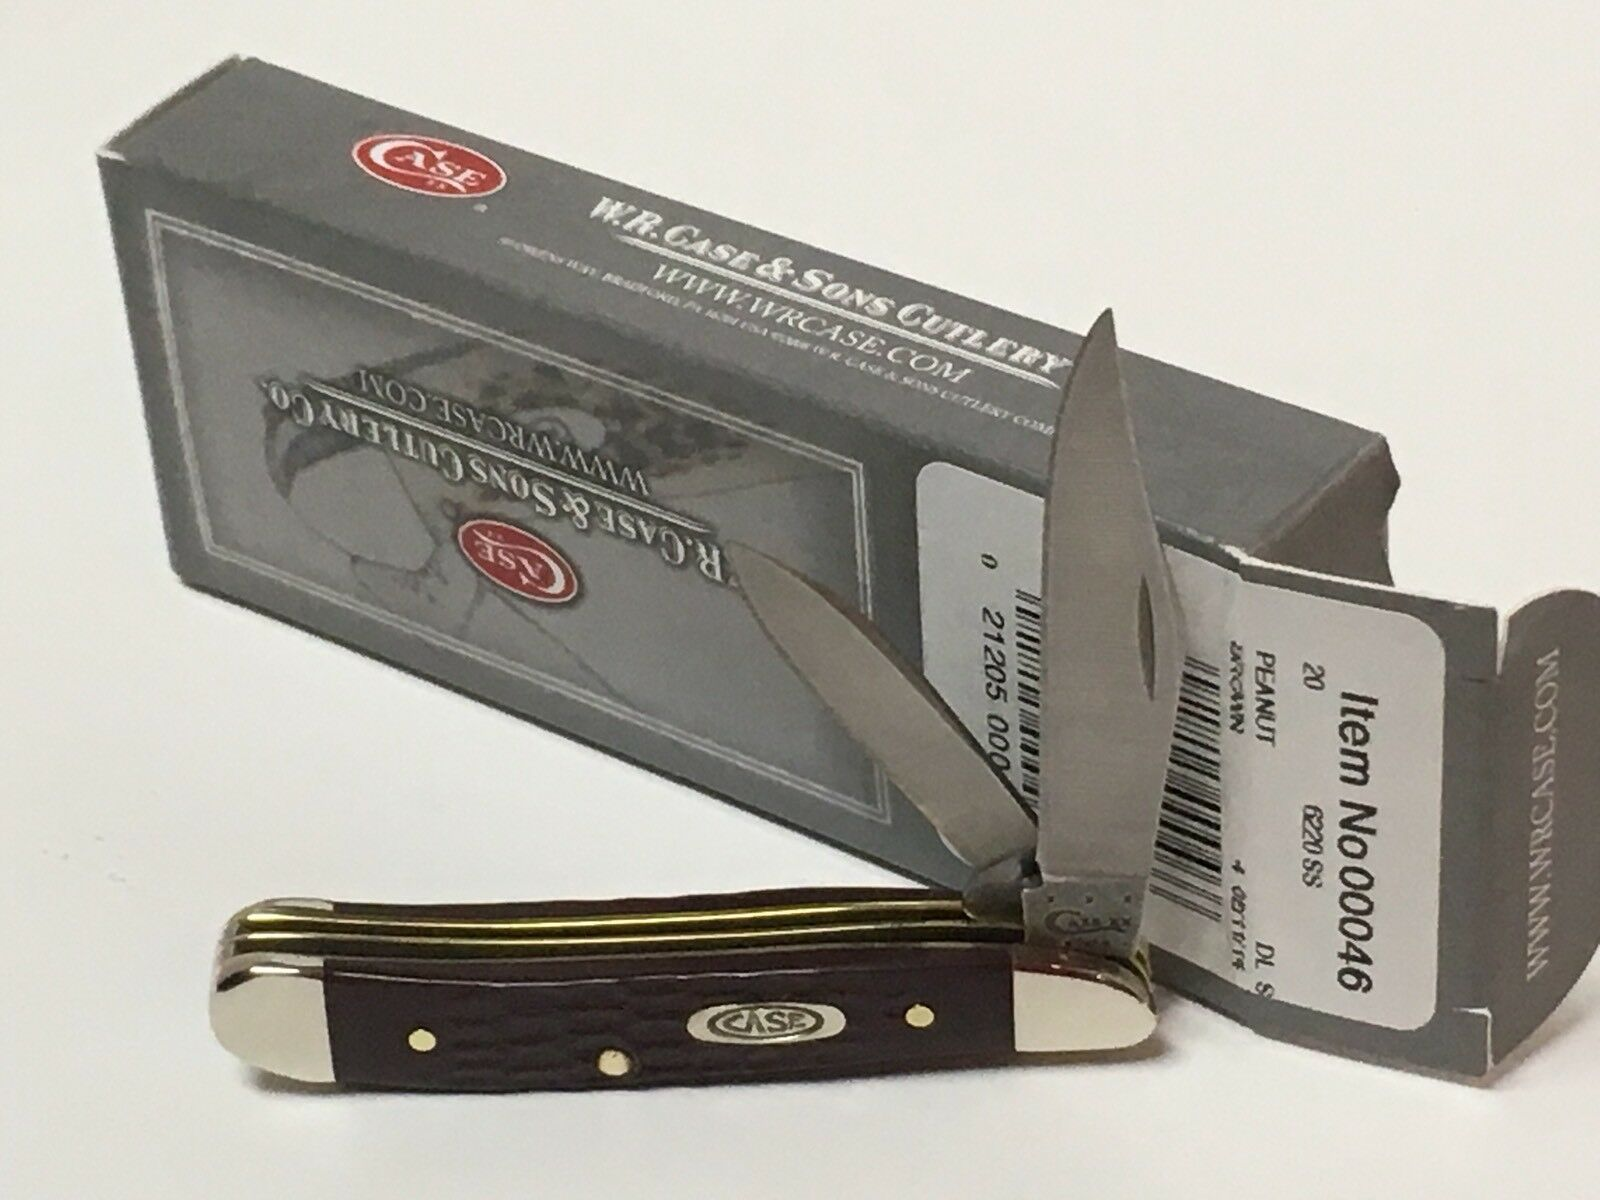 CASE XX BROWN DELRIN SYNTHETIC POCKET KNIFE PEANUT 6220 Itm 00046